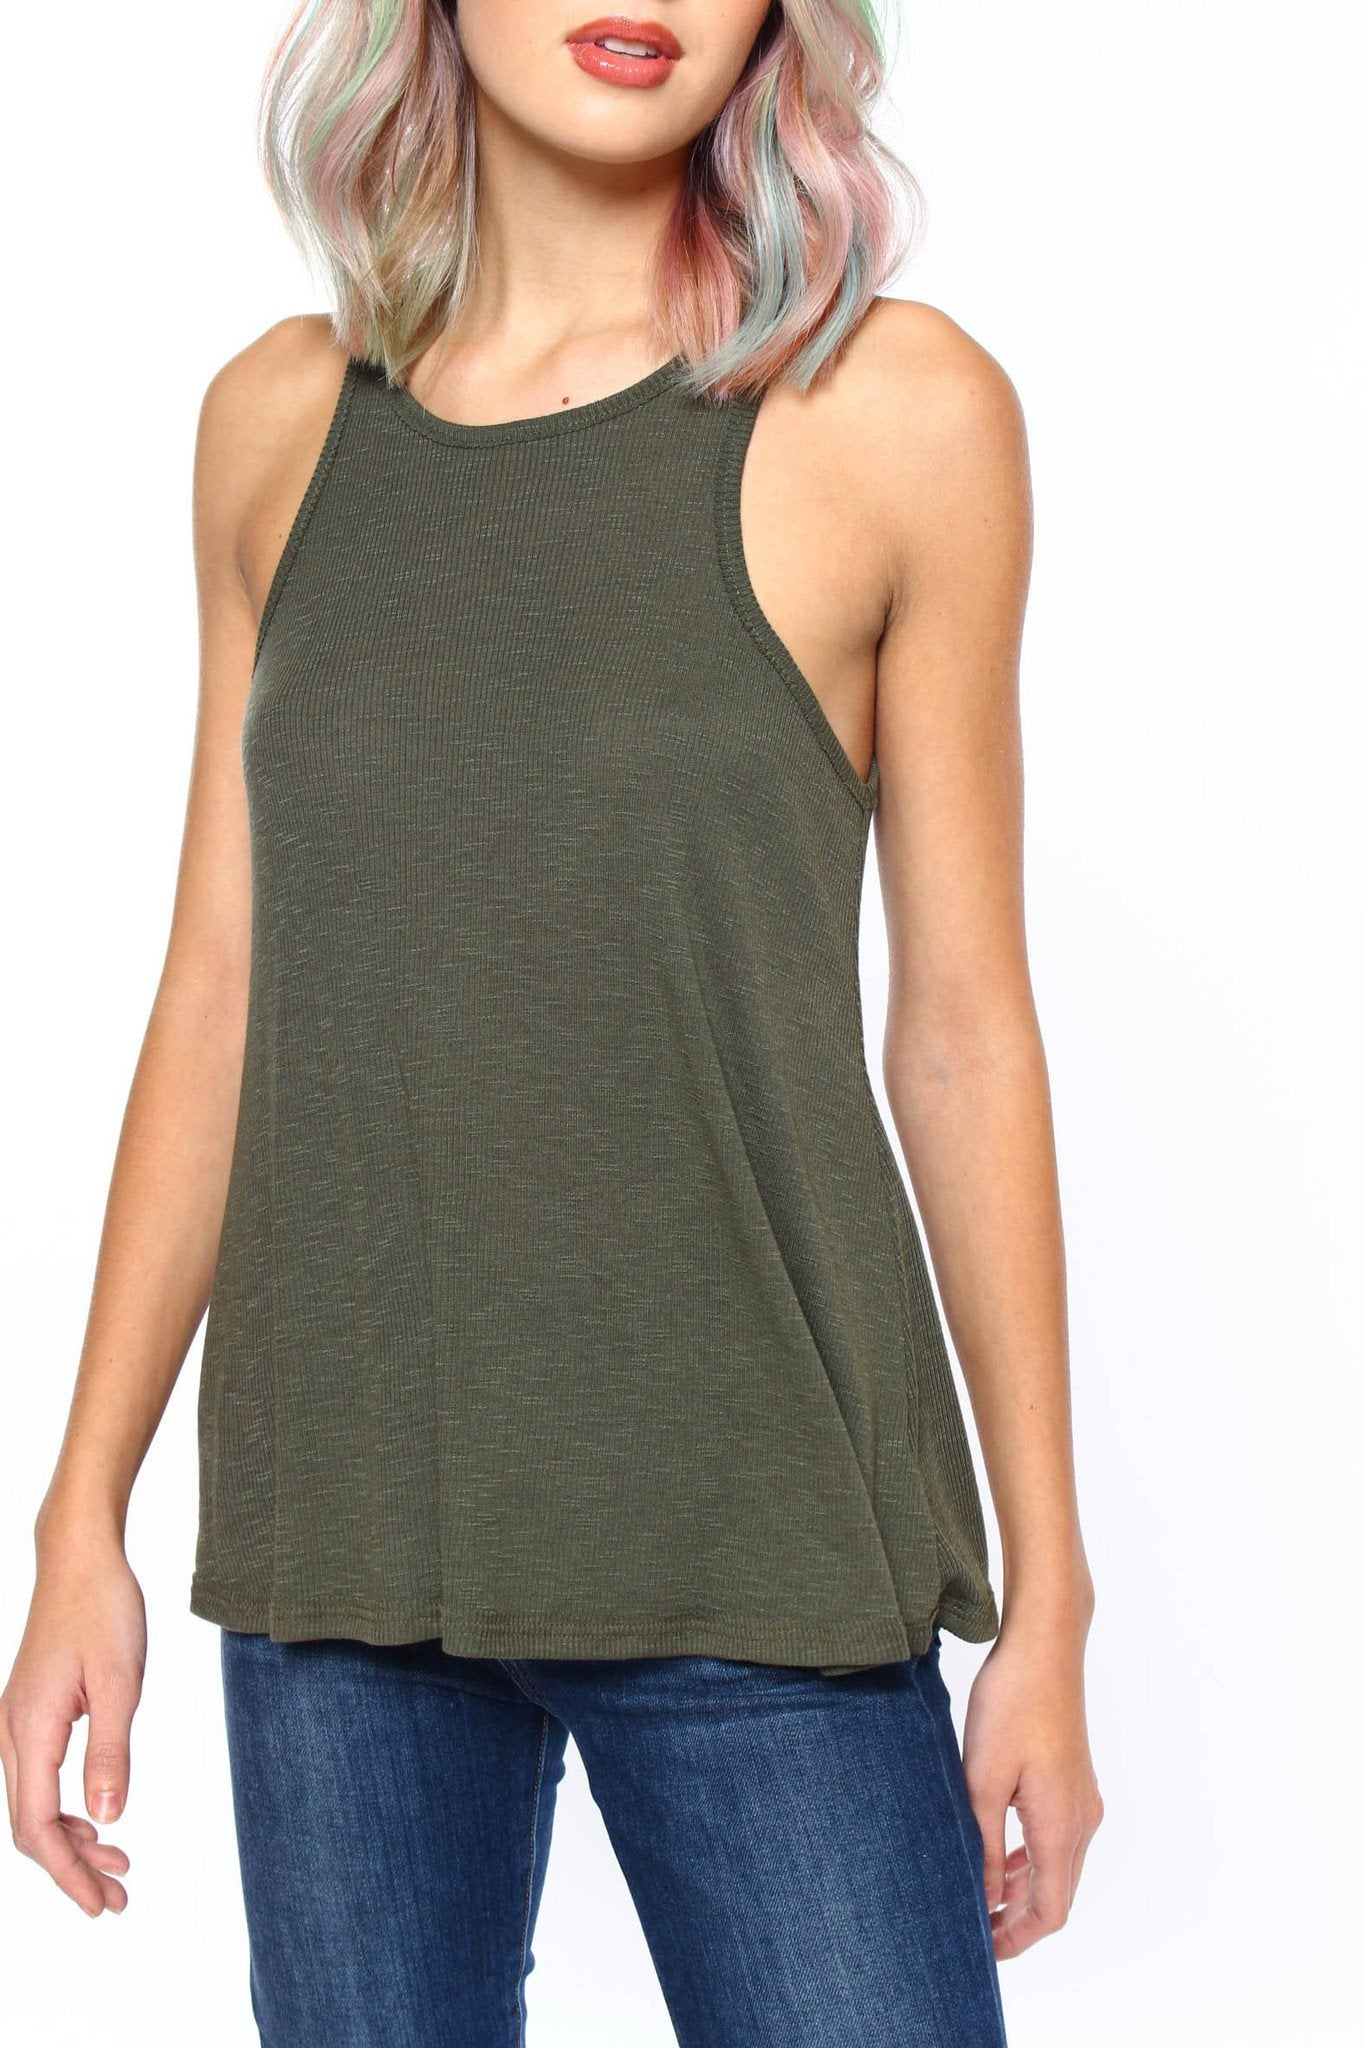 Free People Long Beach Tank - Olive